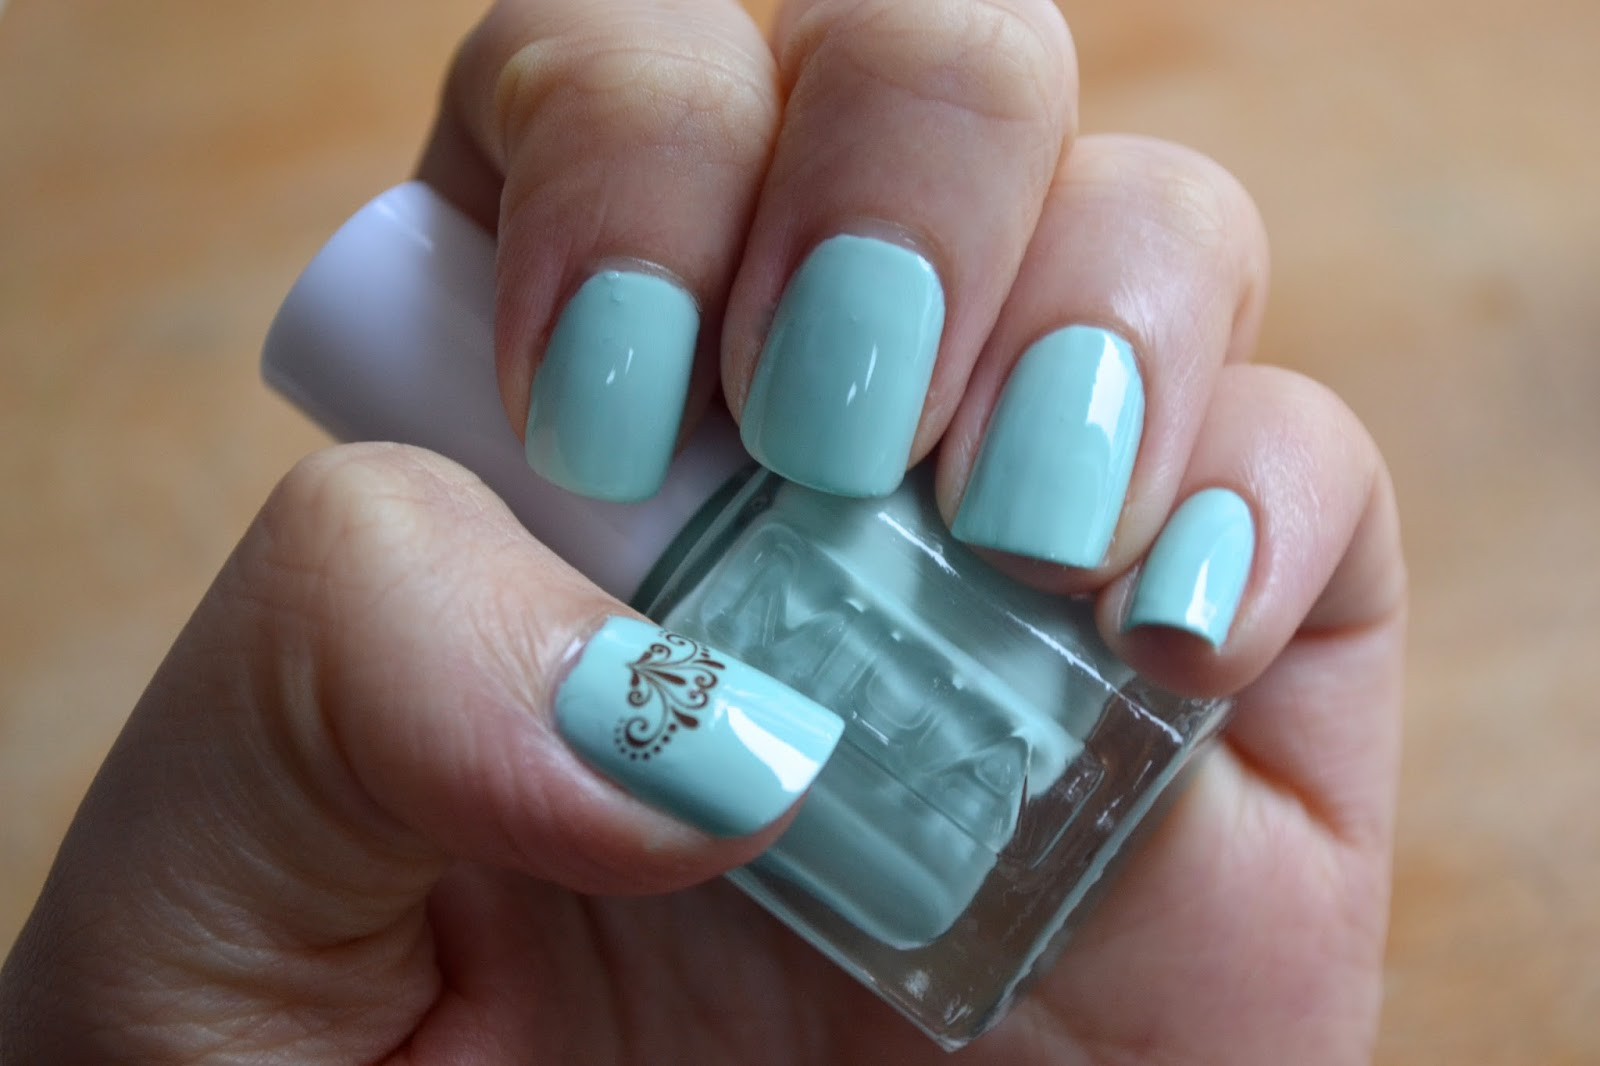 bigRuby Nail Tattoos on mint green nail polish